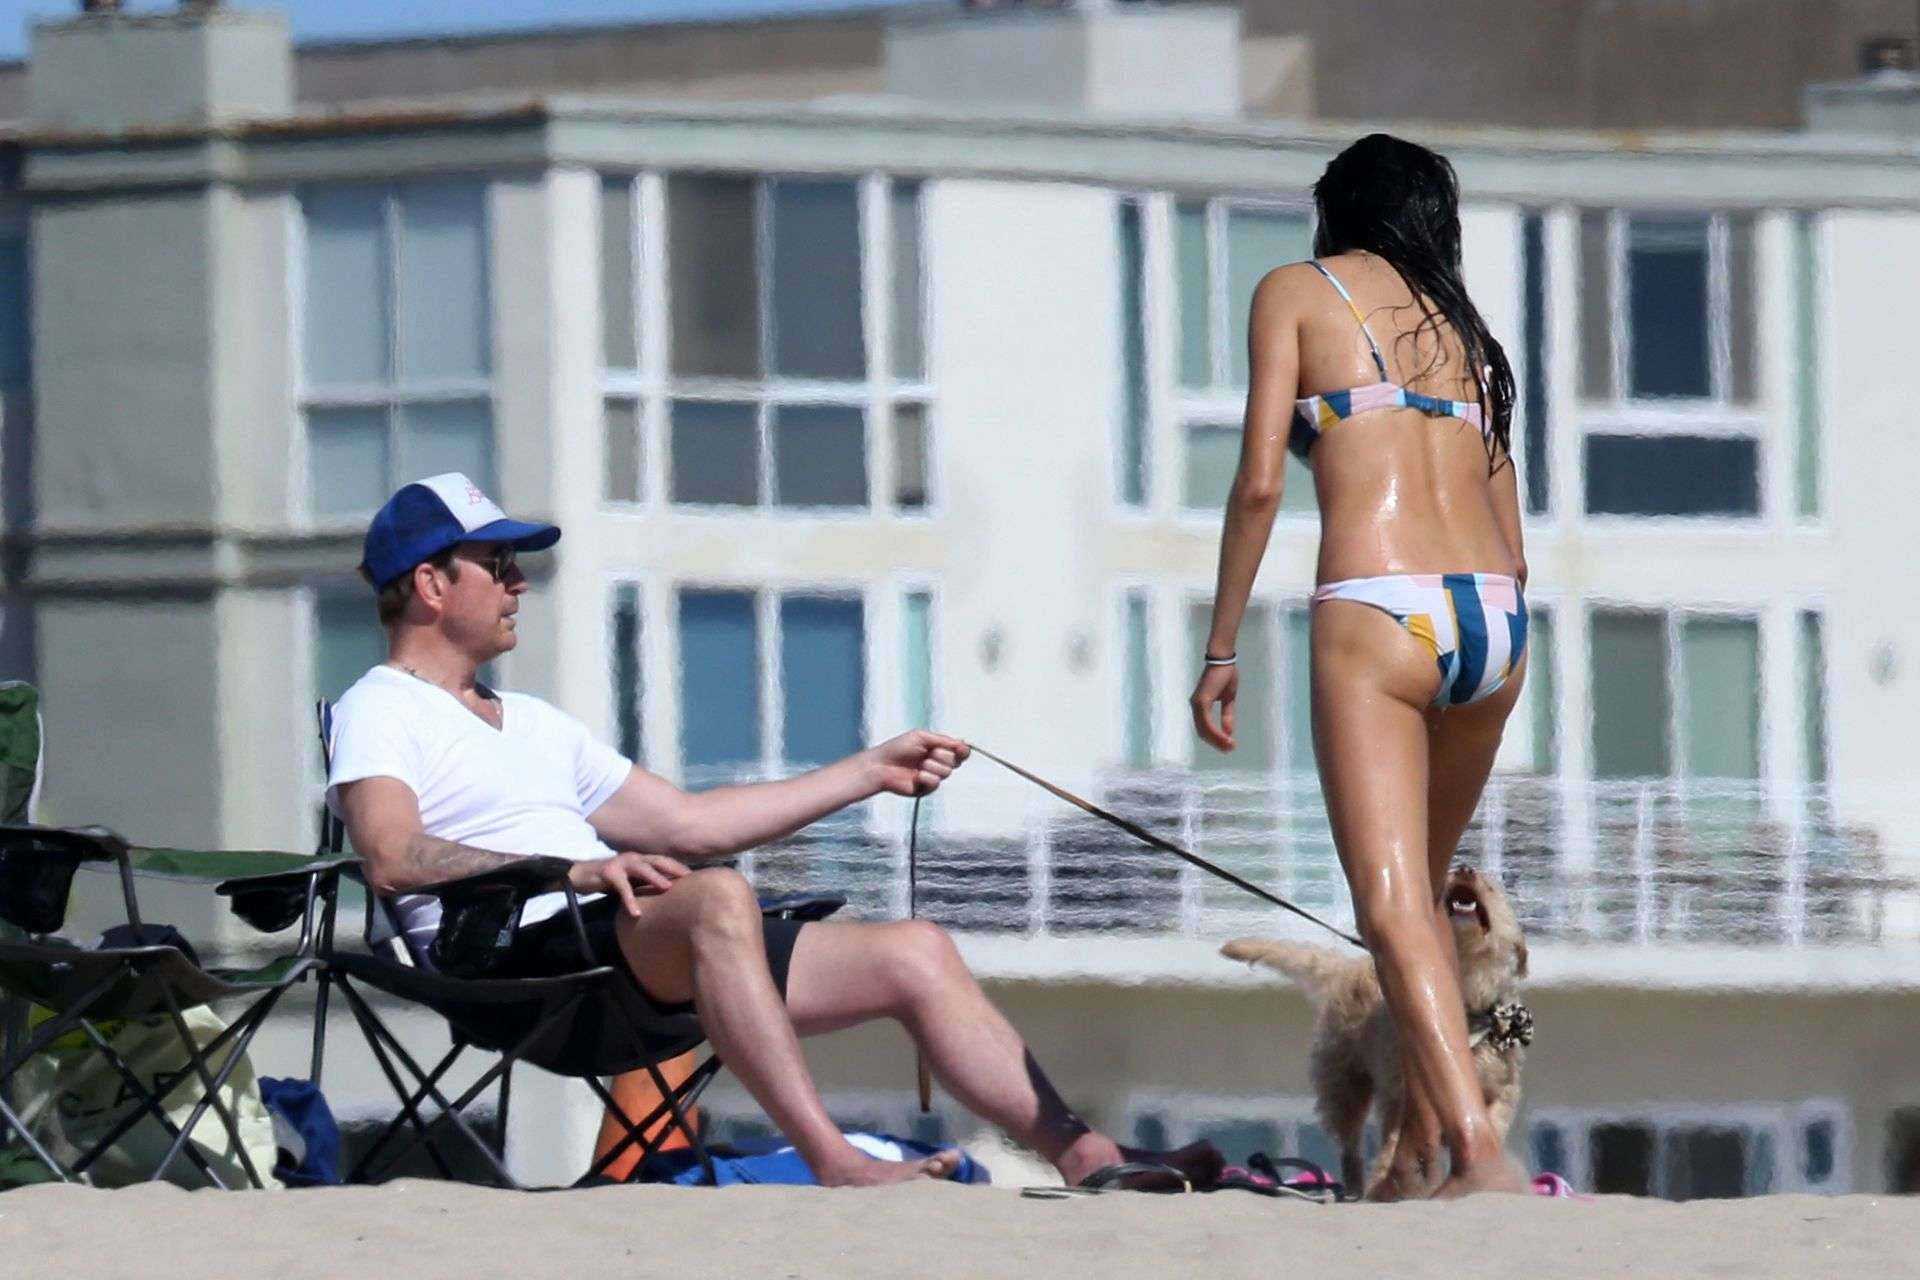 Soo Yeon Lee and Dylan McDermott Enjoys A Beach Day in Los Angeles